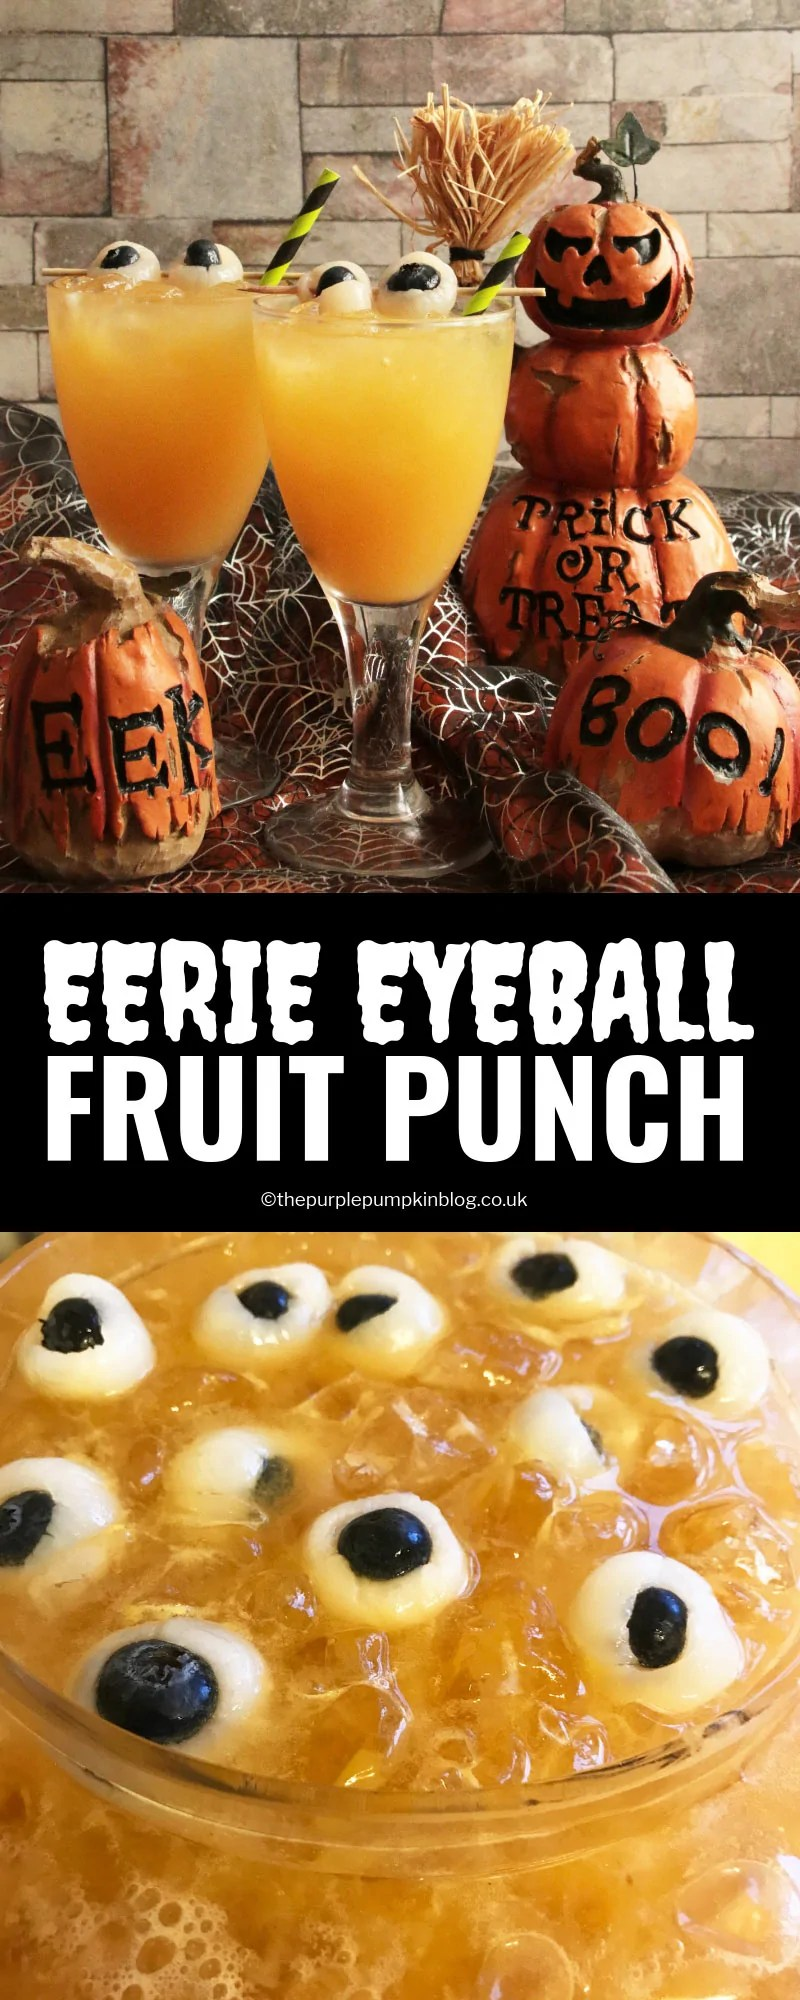 """This Eerie Eyeball Fruit Punch is a great drink to serve at a Halloween Party. It can be kept non-alcoholic for non-drinkers and kids, or laced with booze for the drinkers. The floating """"eyeballs"""" give it that eerie edge!"""